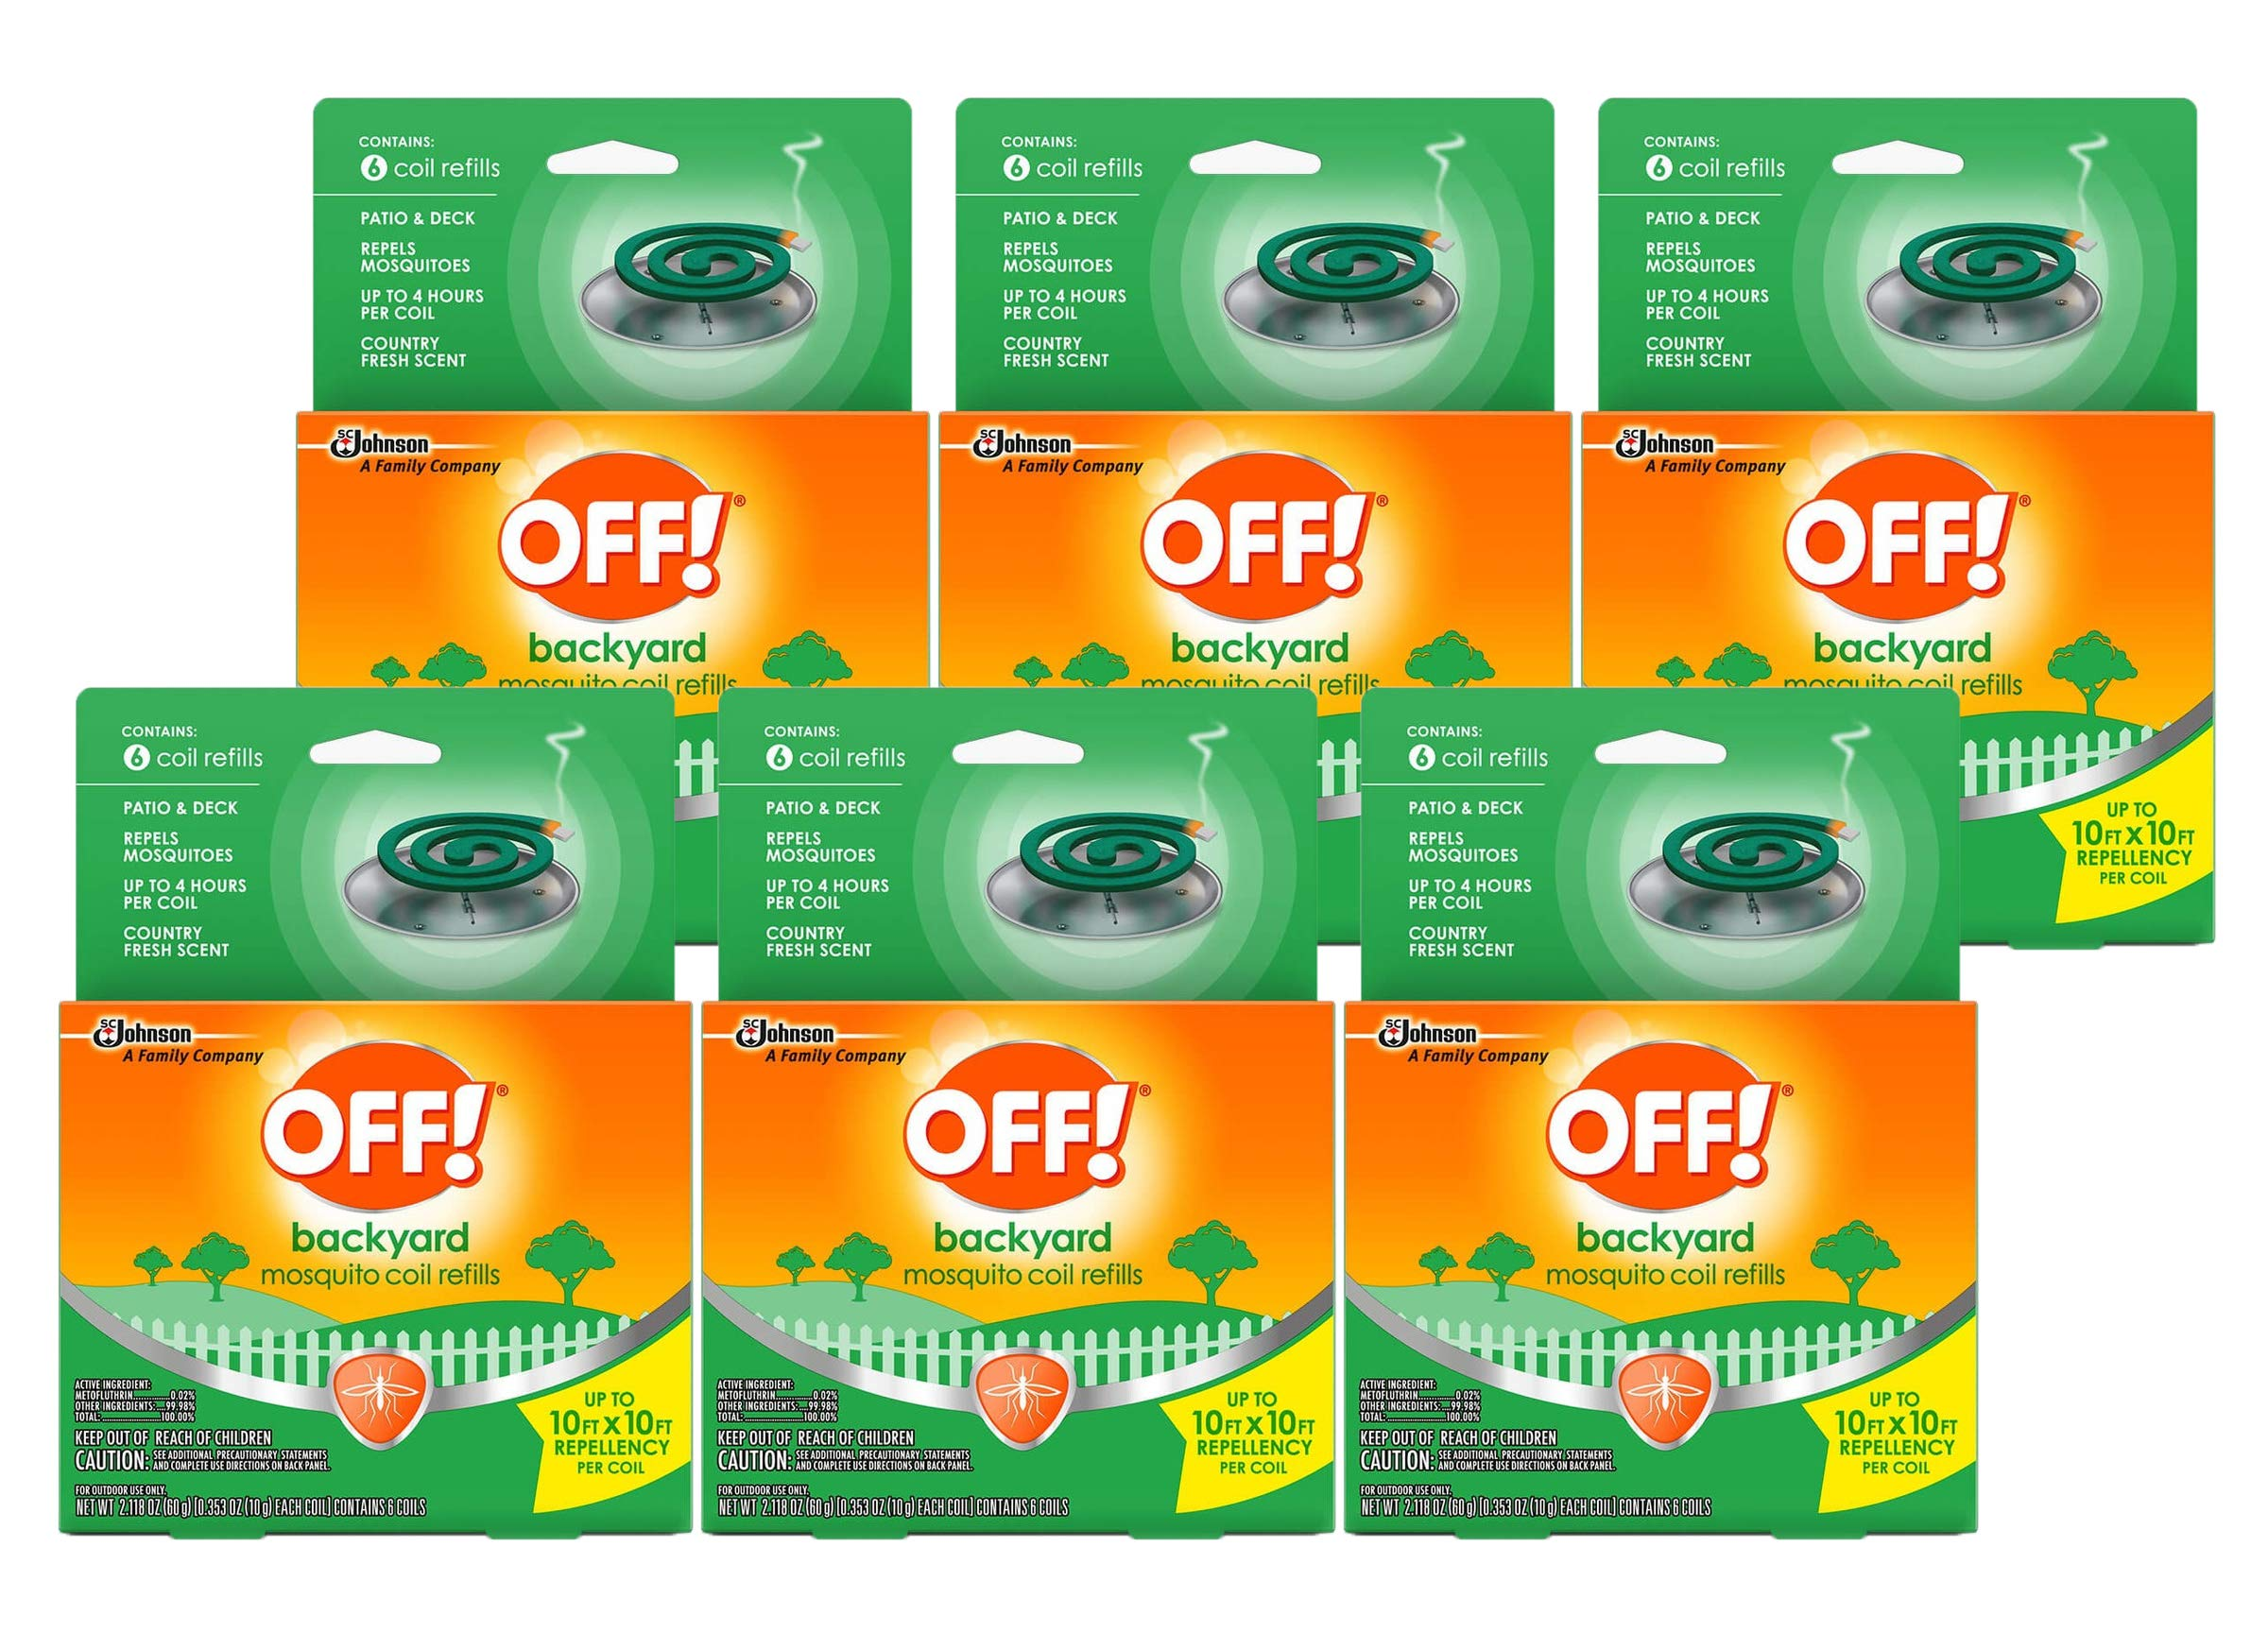 Off!. S C Johnson Country Fresh Scent Mosquito Coil III Refills, 6 Refills (Pack of 6) by Off!.